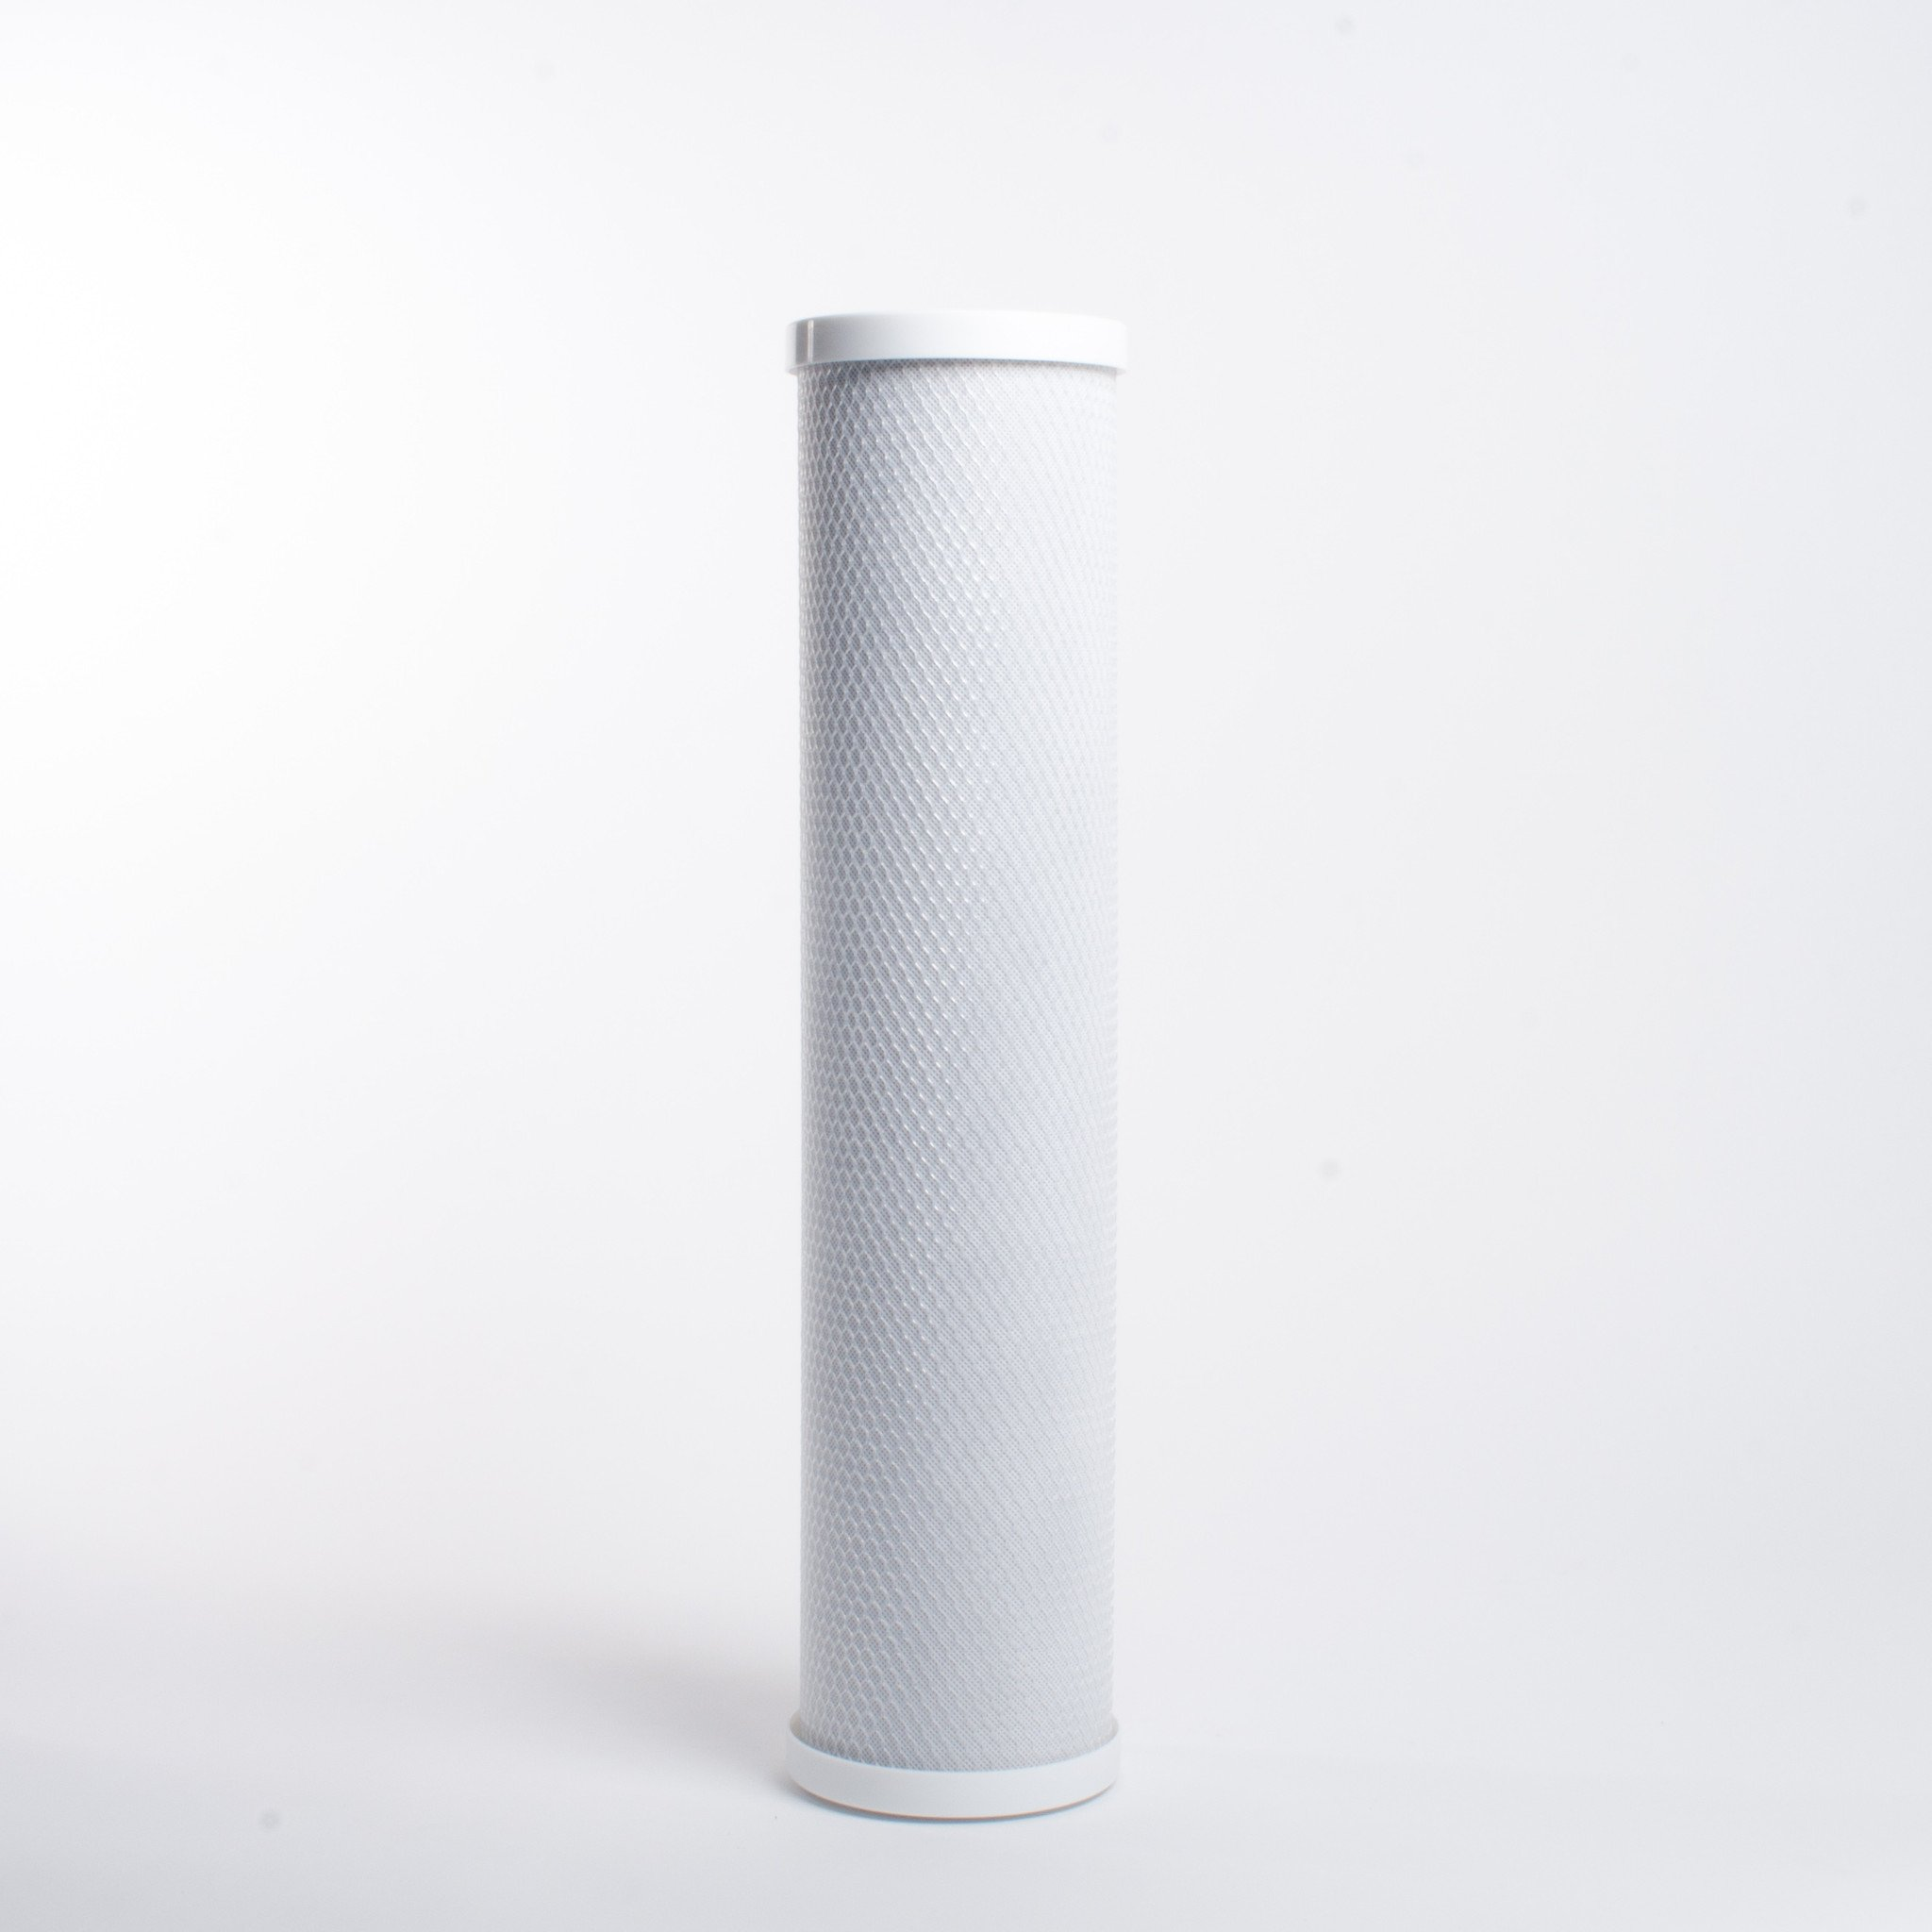 Anchor USA 4 lb. KDF and GAC Replacement Water Filter Cartridge for Whole House Water Filtration Systems by Anchor USA